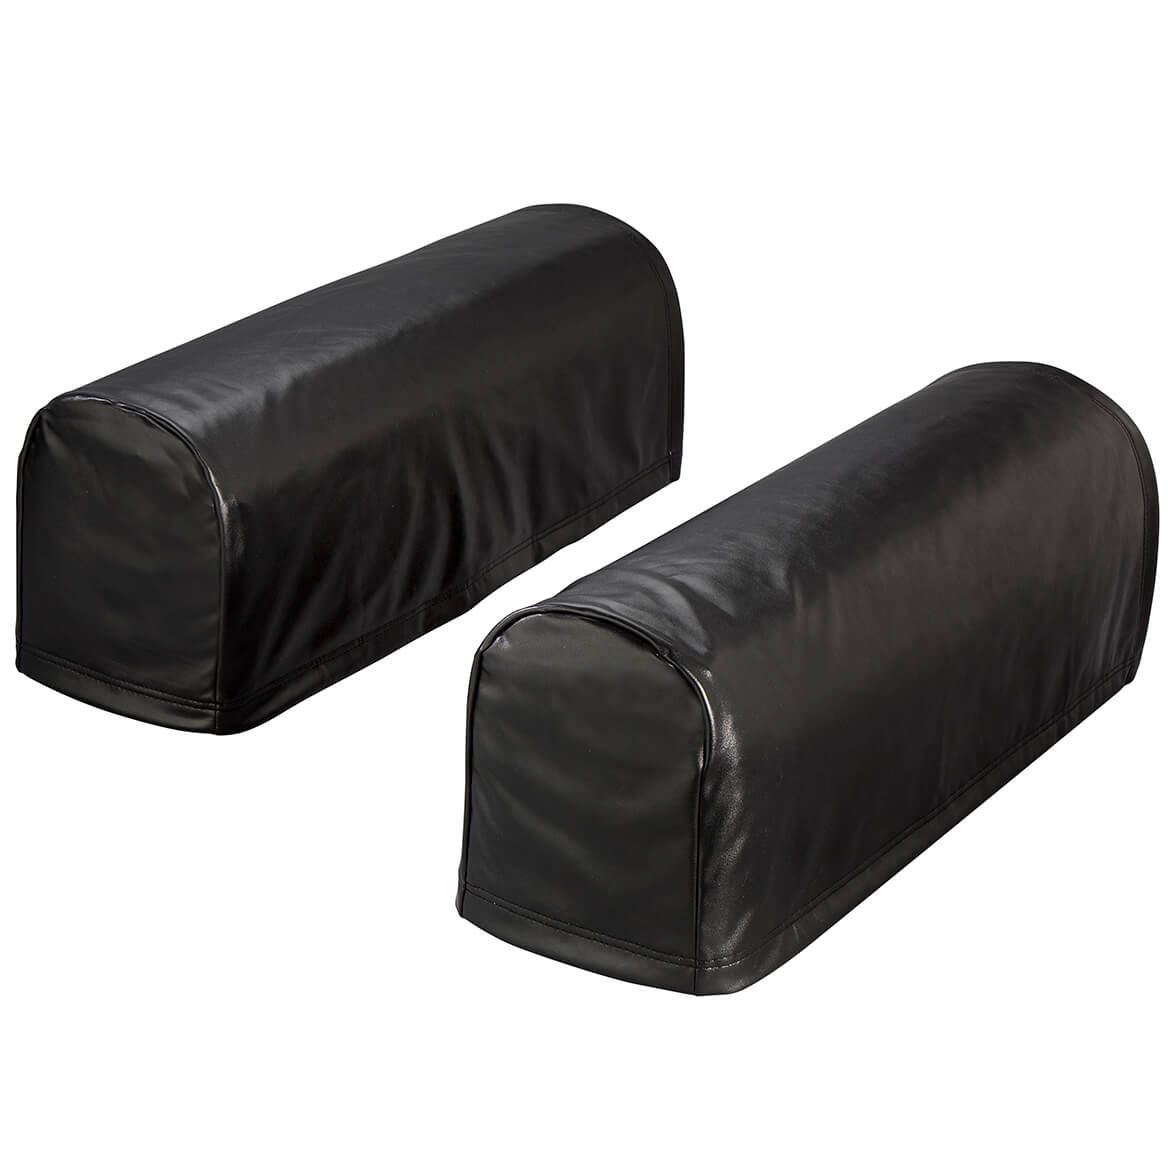 Faux Leather Arm Rest Covers, Set of 2-368113